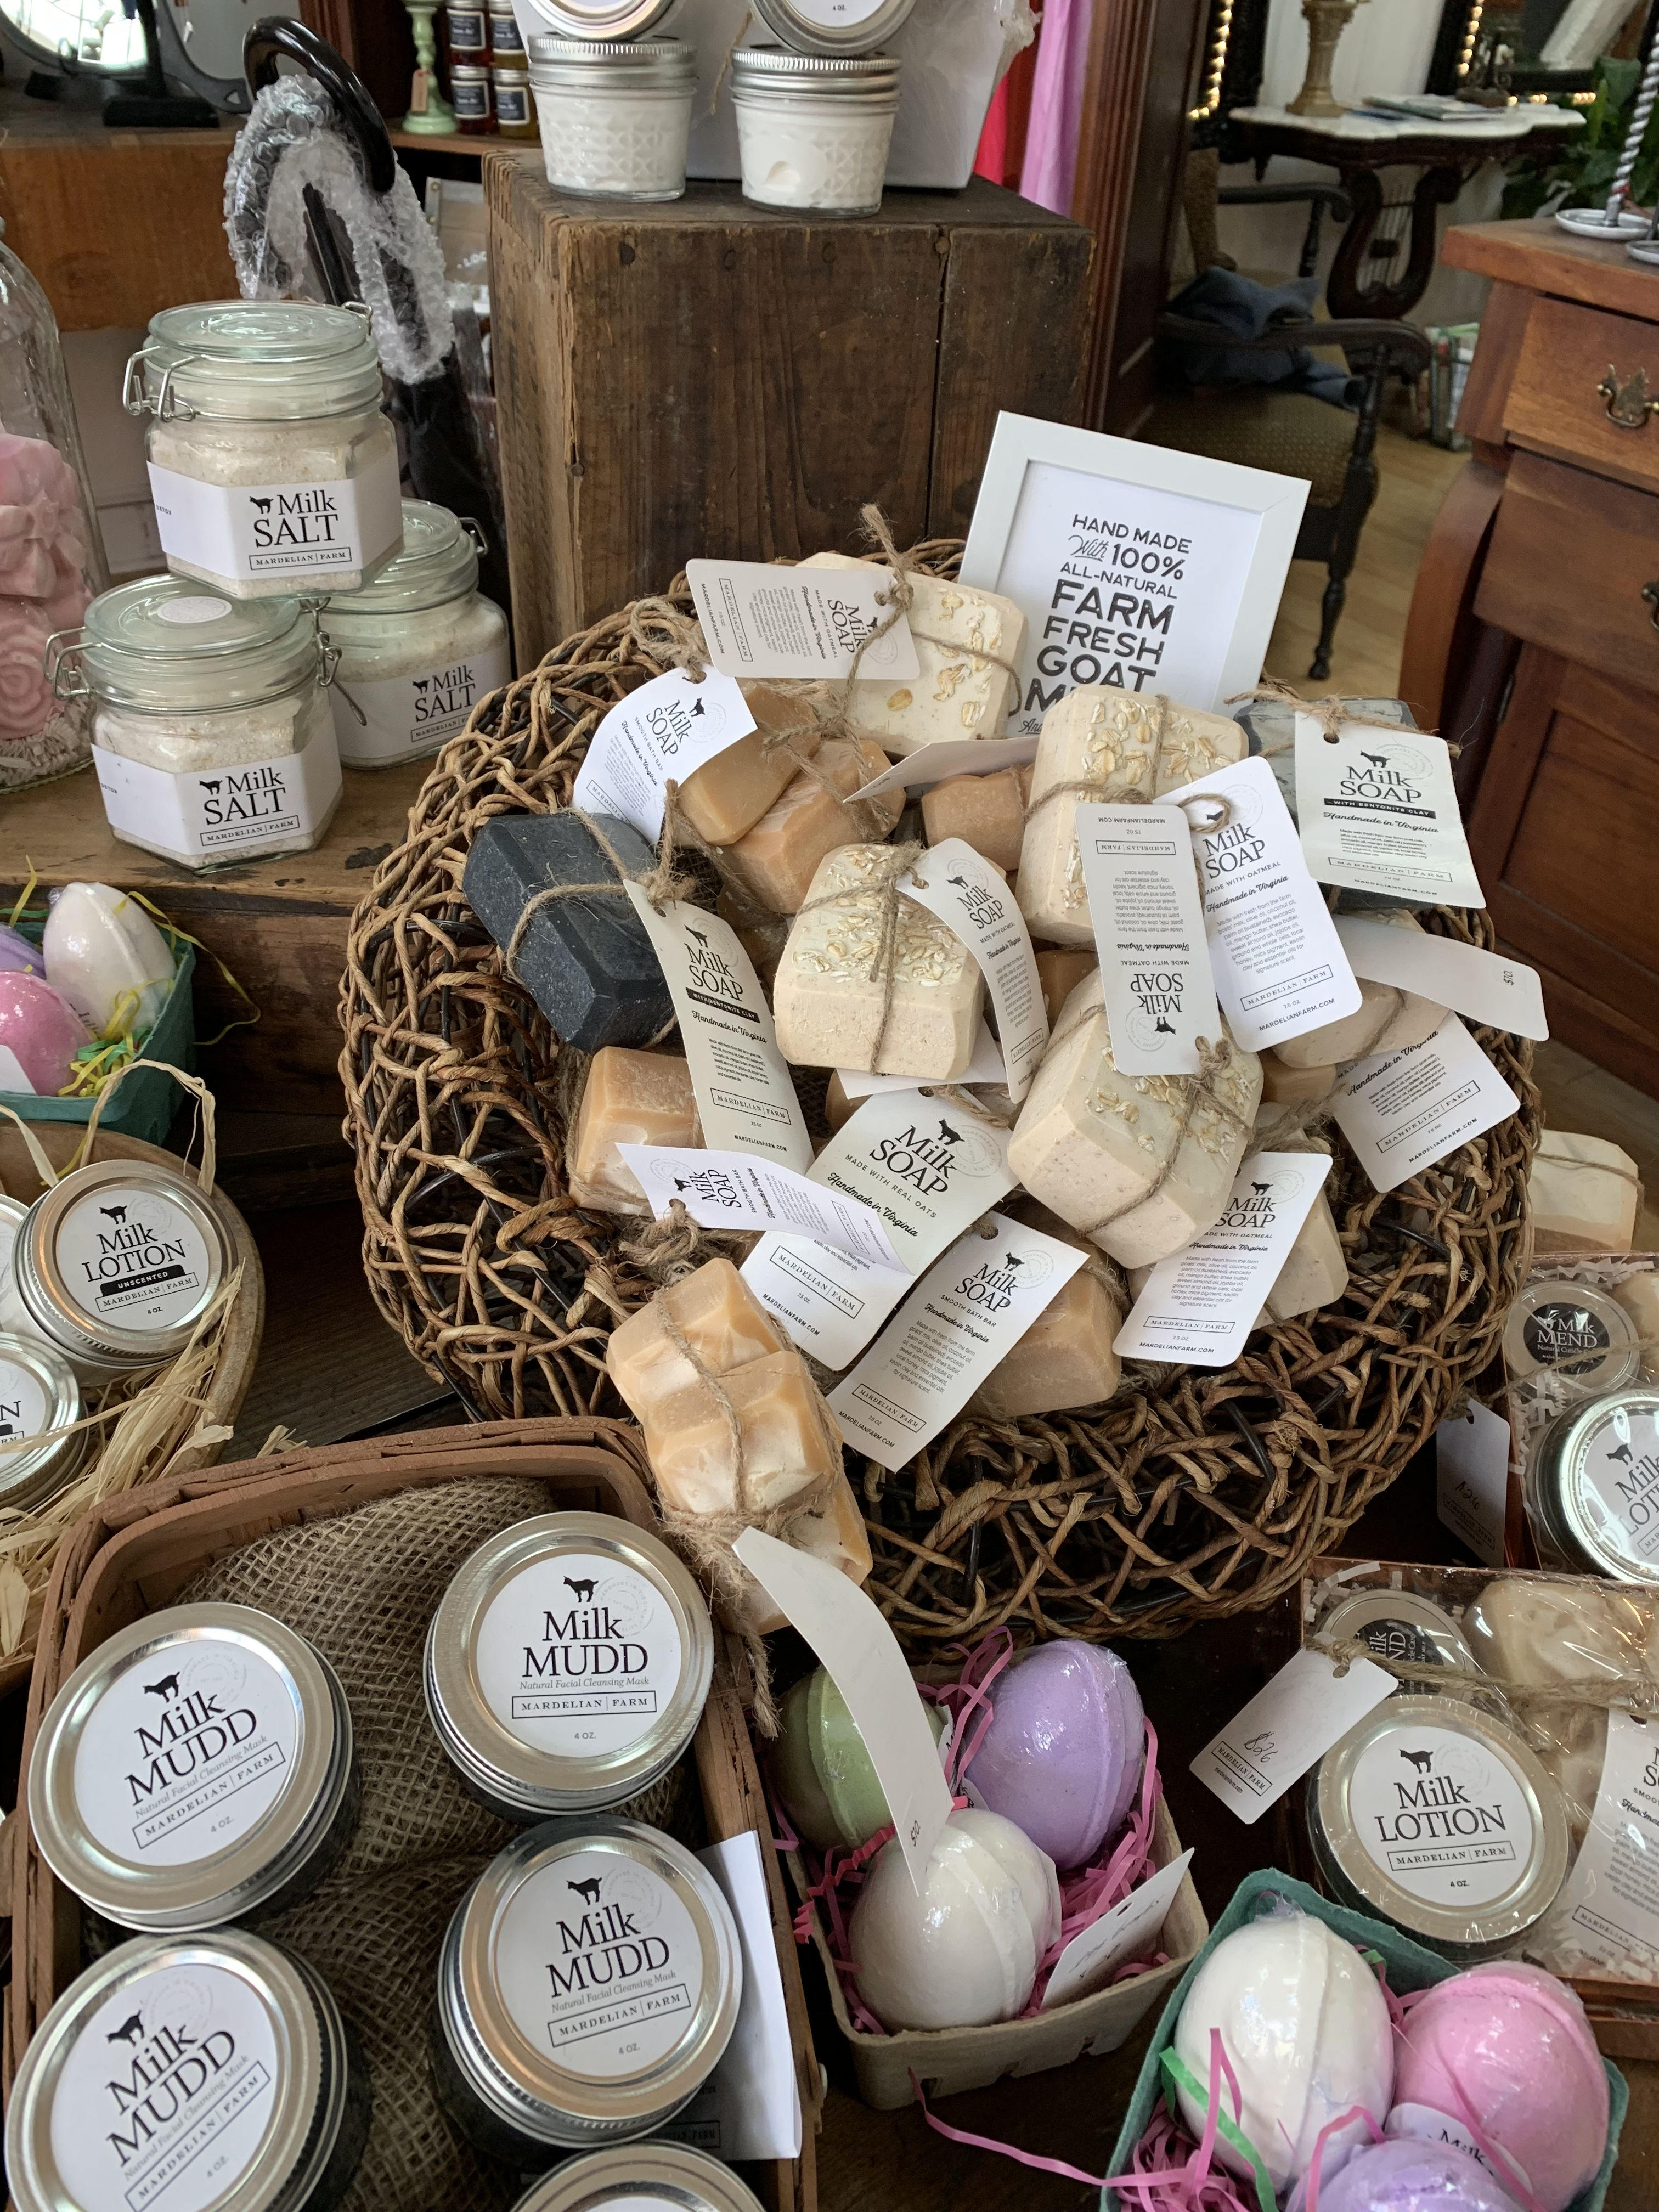 Mardelian Farm products at The Apothic Company in Old